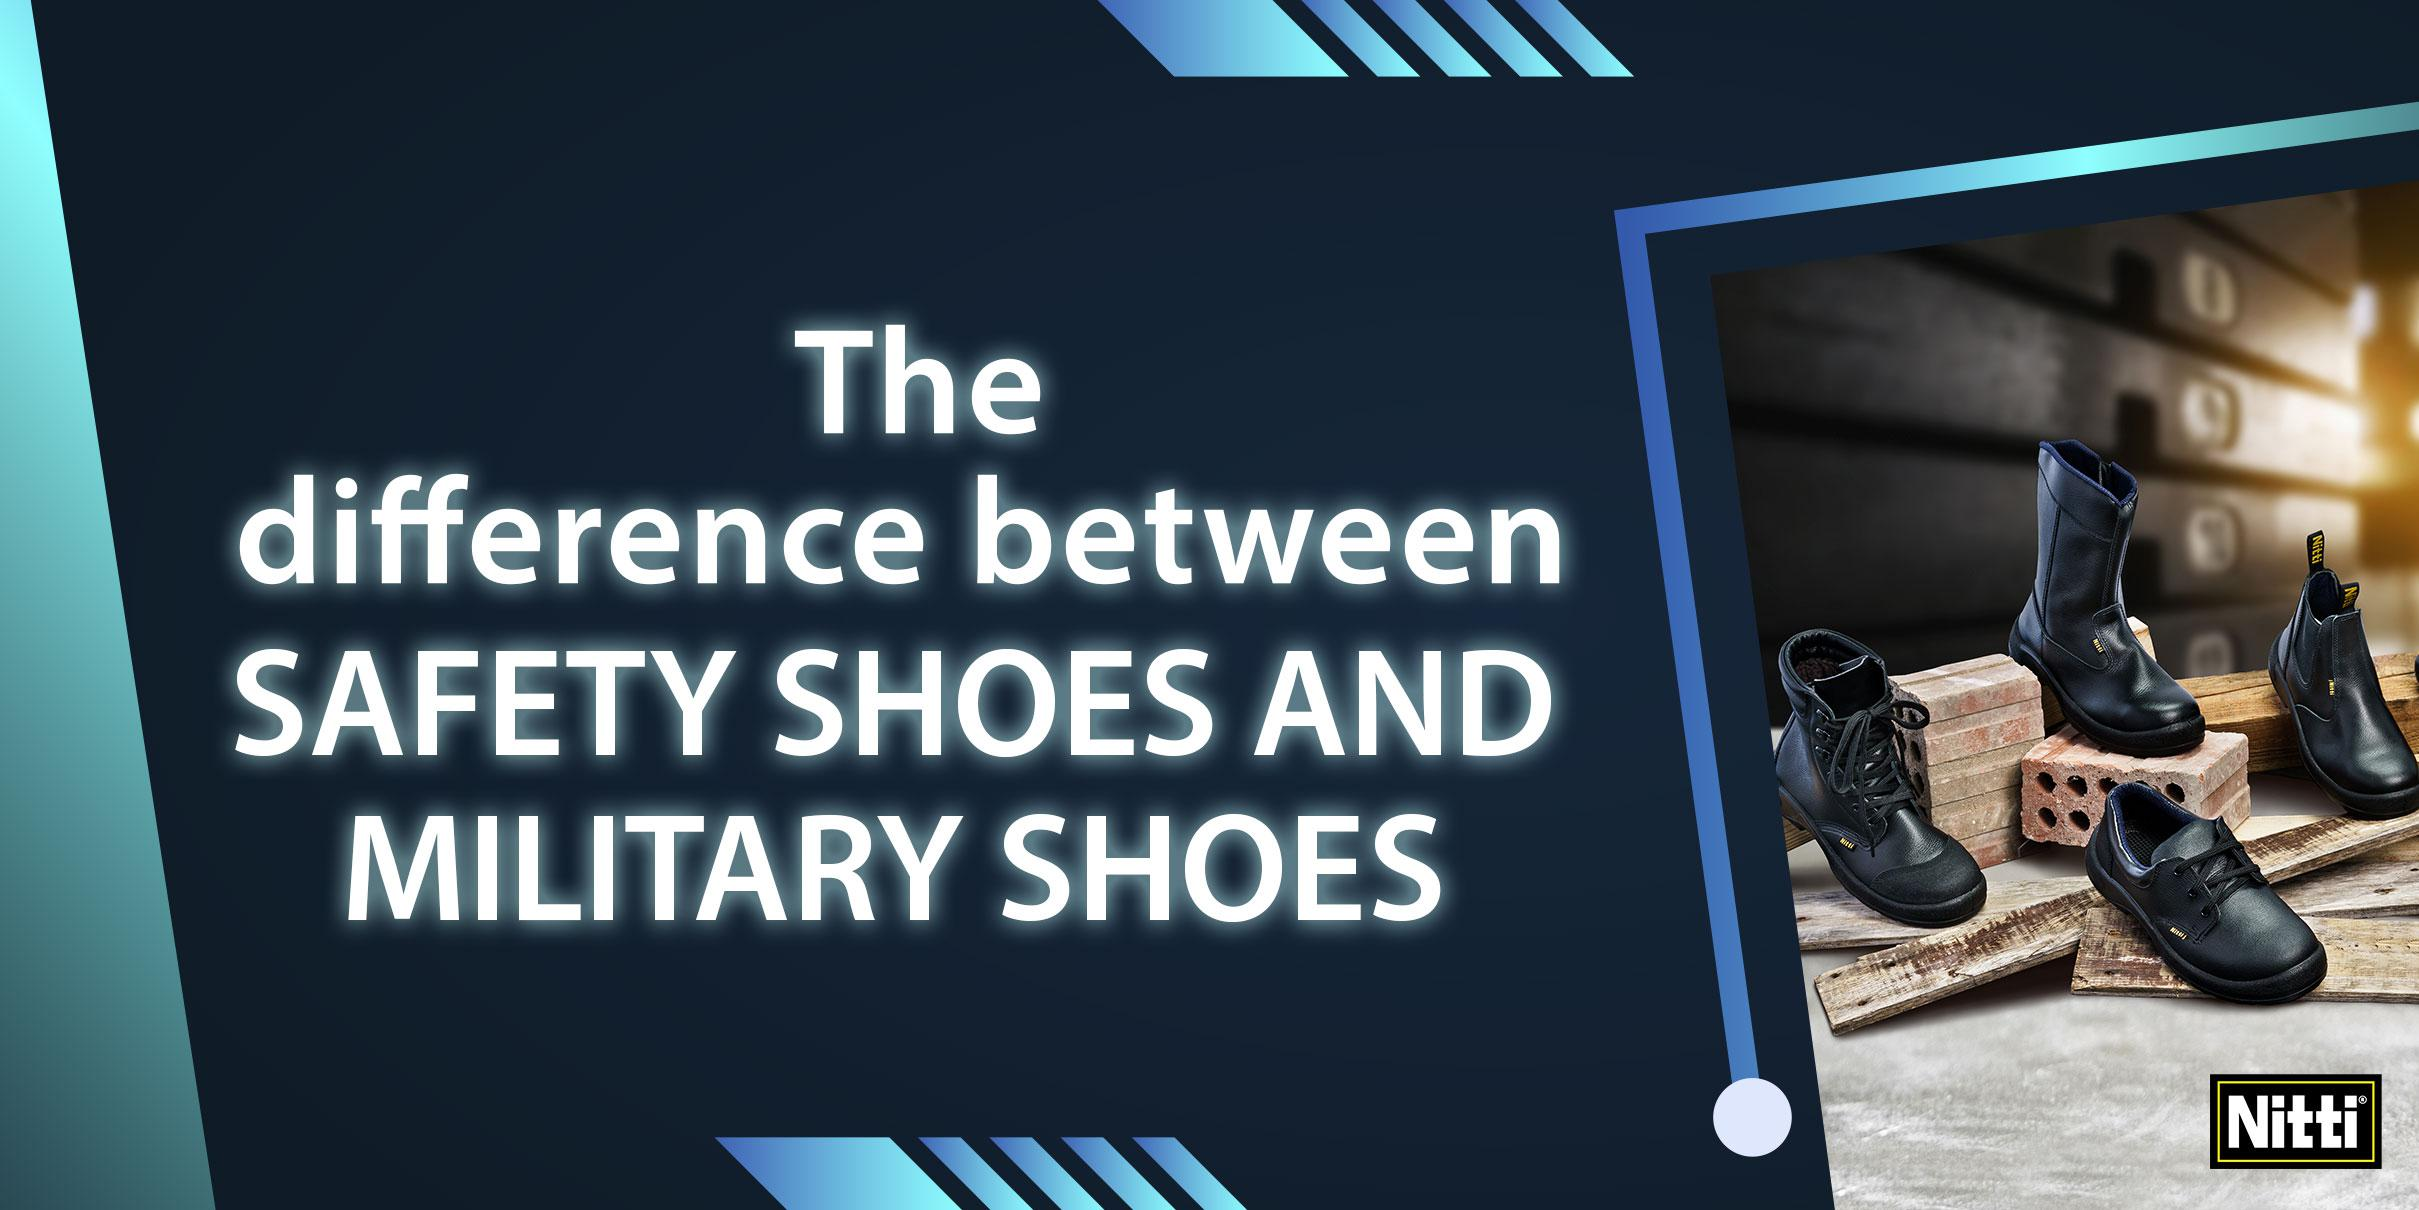 The difference between safety shoes and military shoes